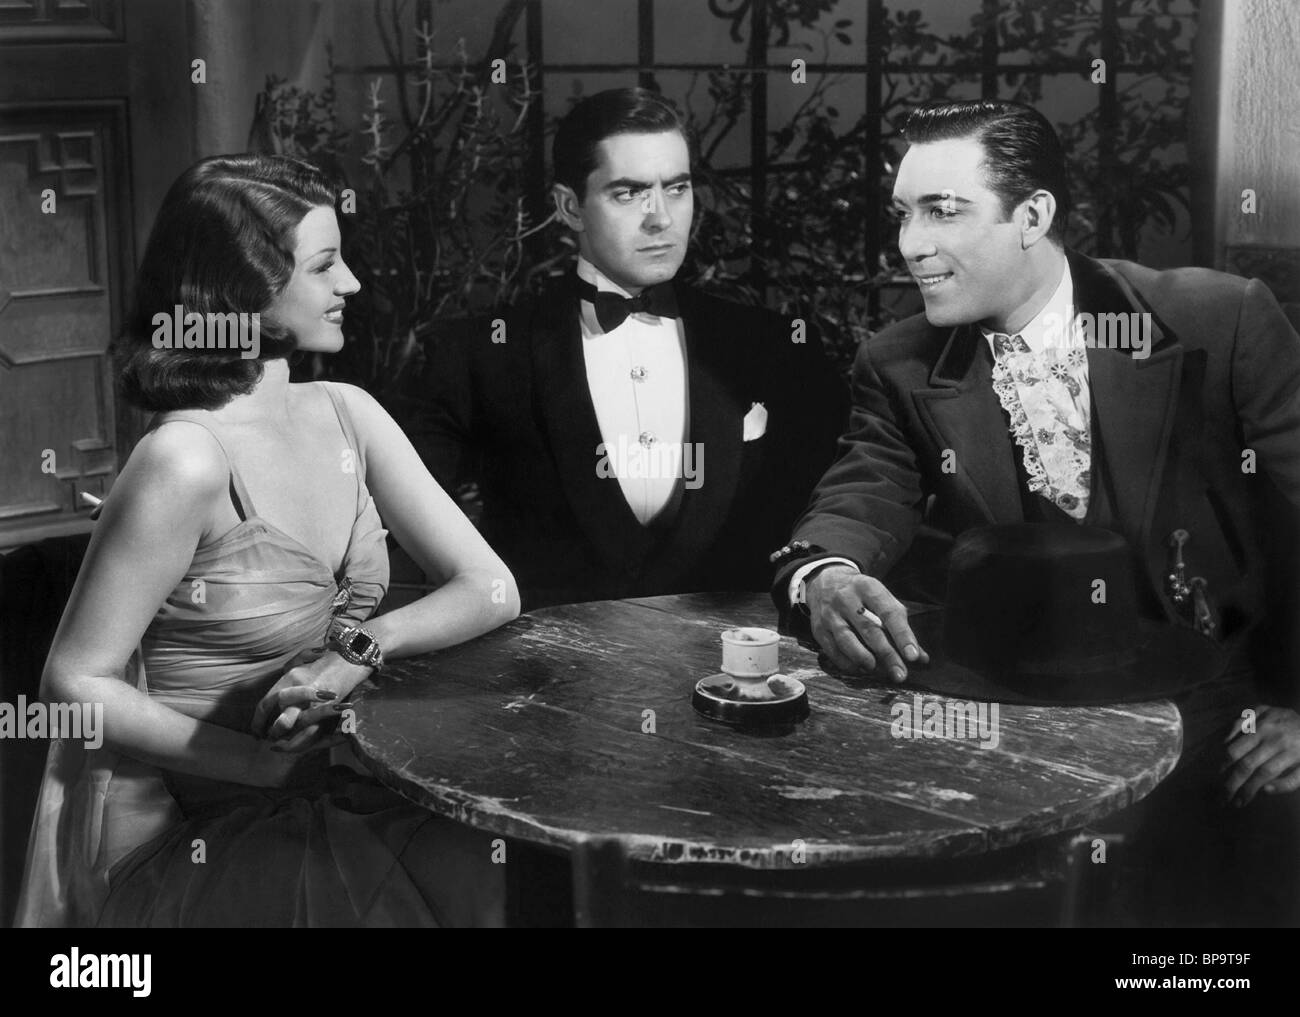 http://c8.alamy.com/comp/BP9T9F/rita-hayworth-tyrone-power-anthony-quinn-blood-and-sand-1941-BP9T9F.jpg